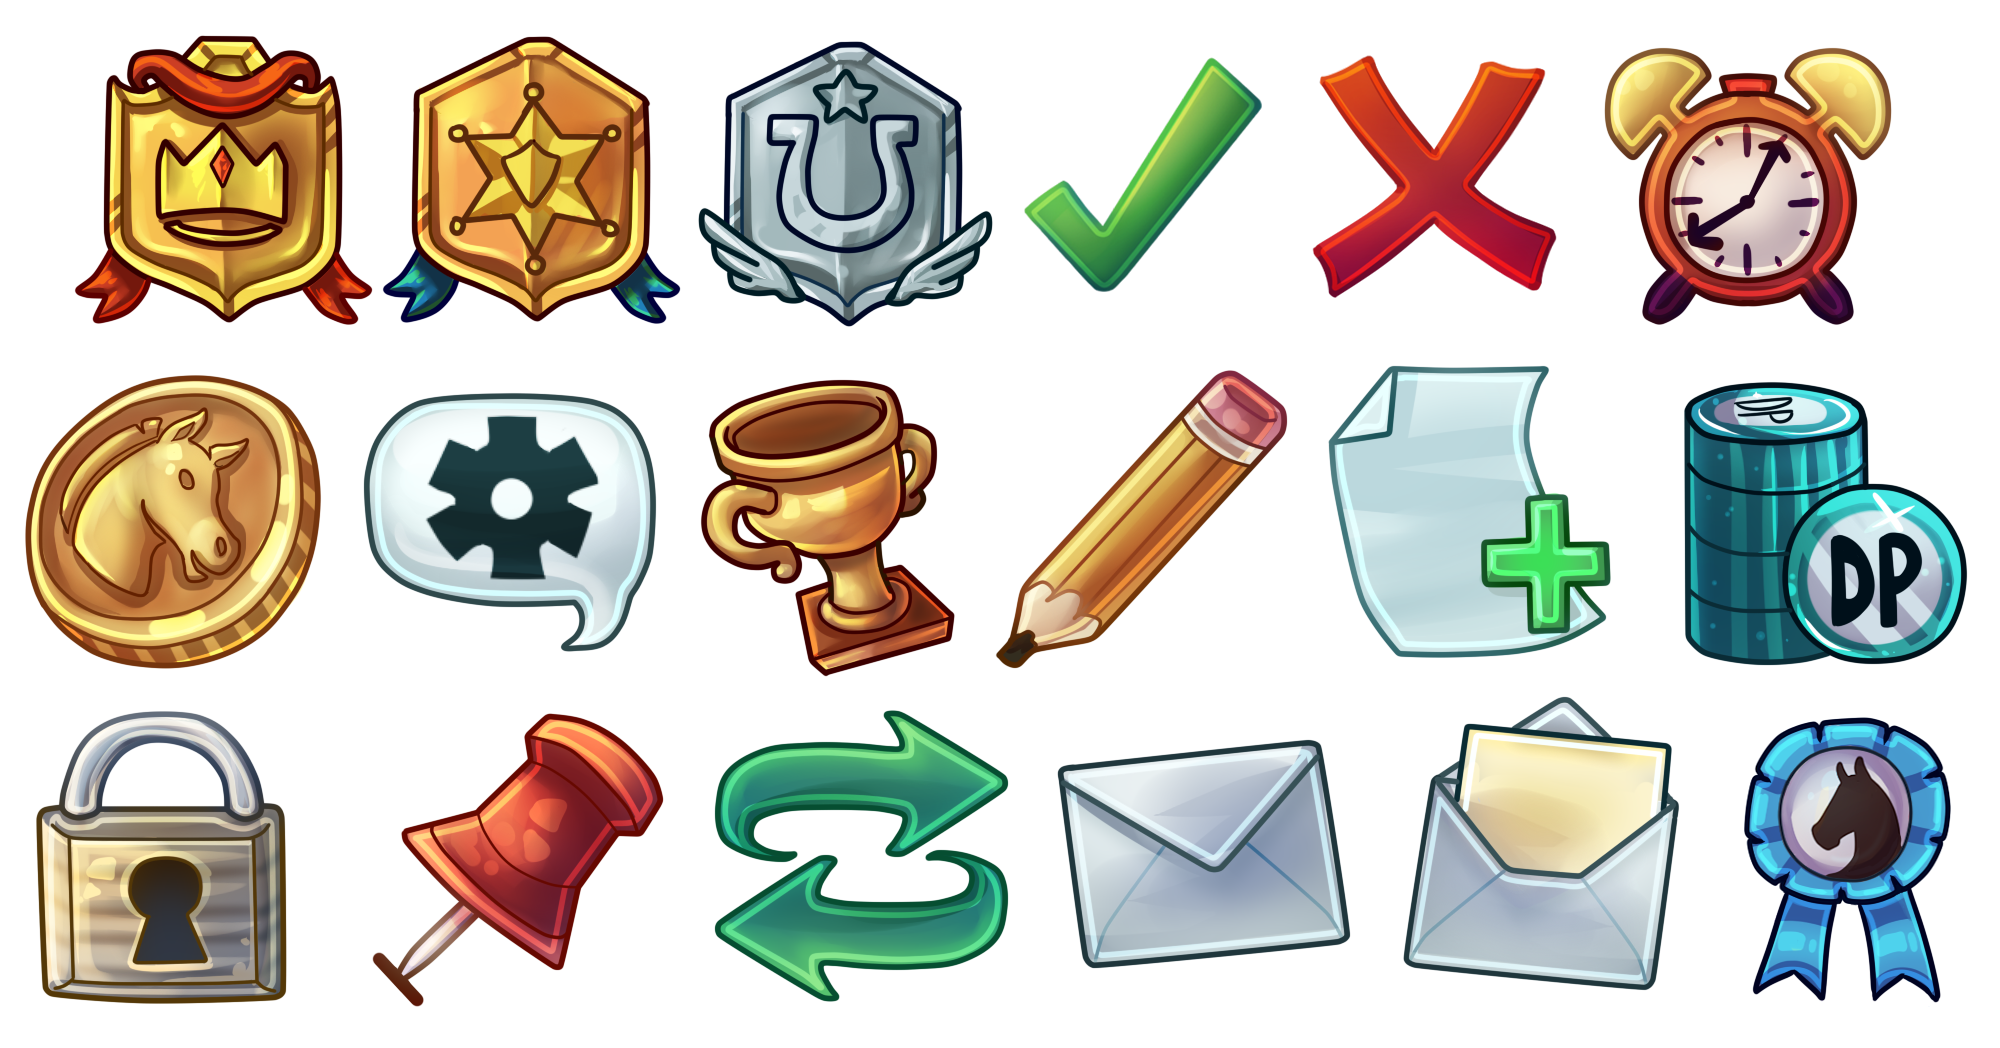 Custom icons to be used throughout game.